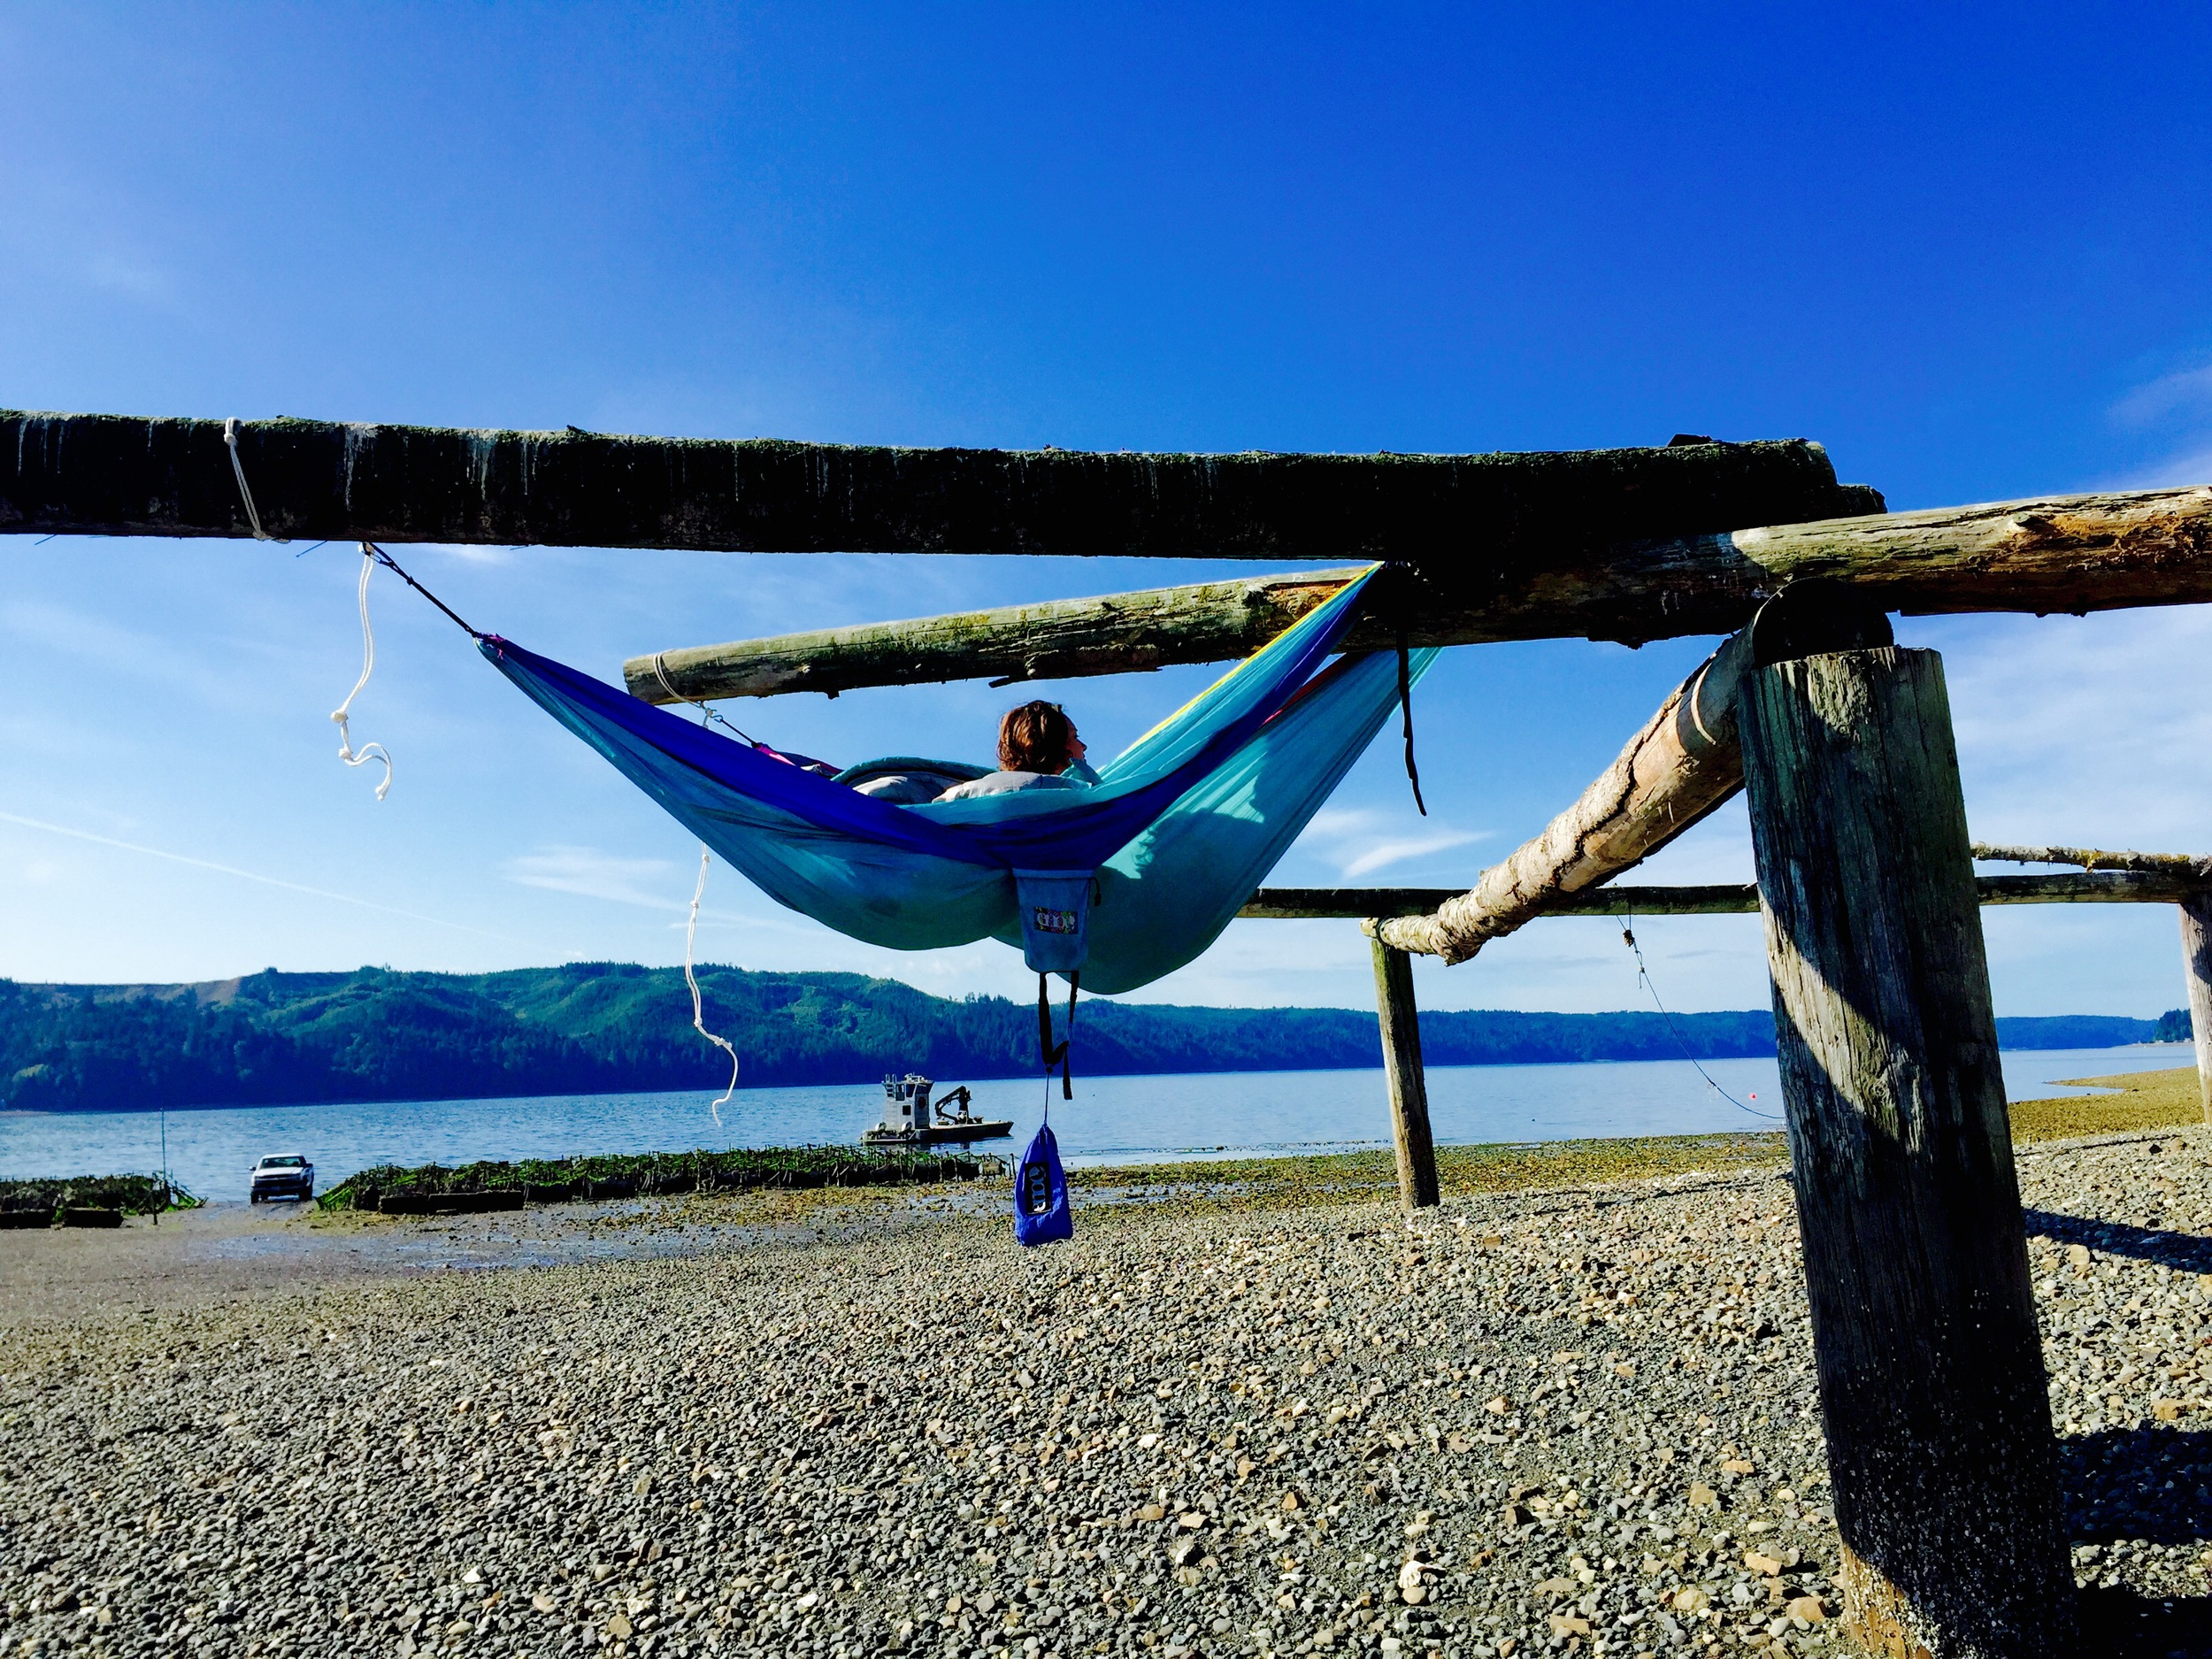 Hammocking in the oyster fields at Hama Hama Oysters in Lilliwaup, Washington